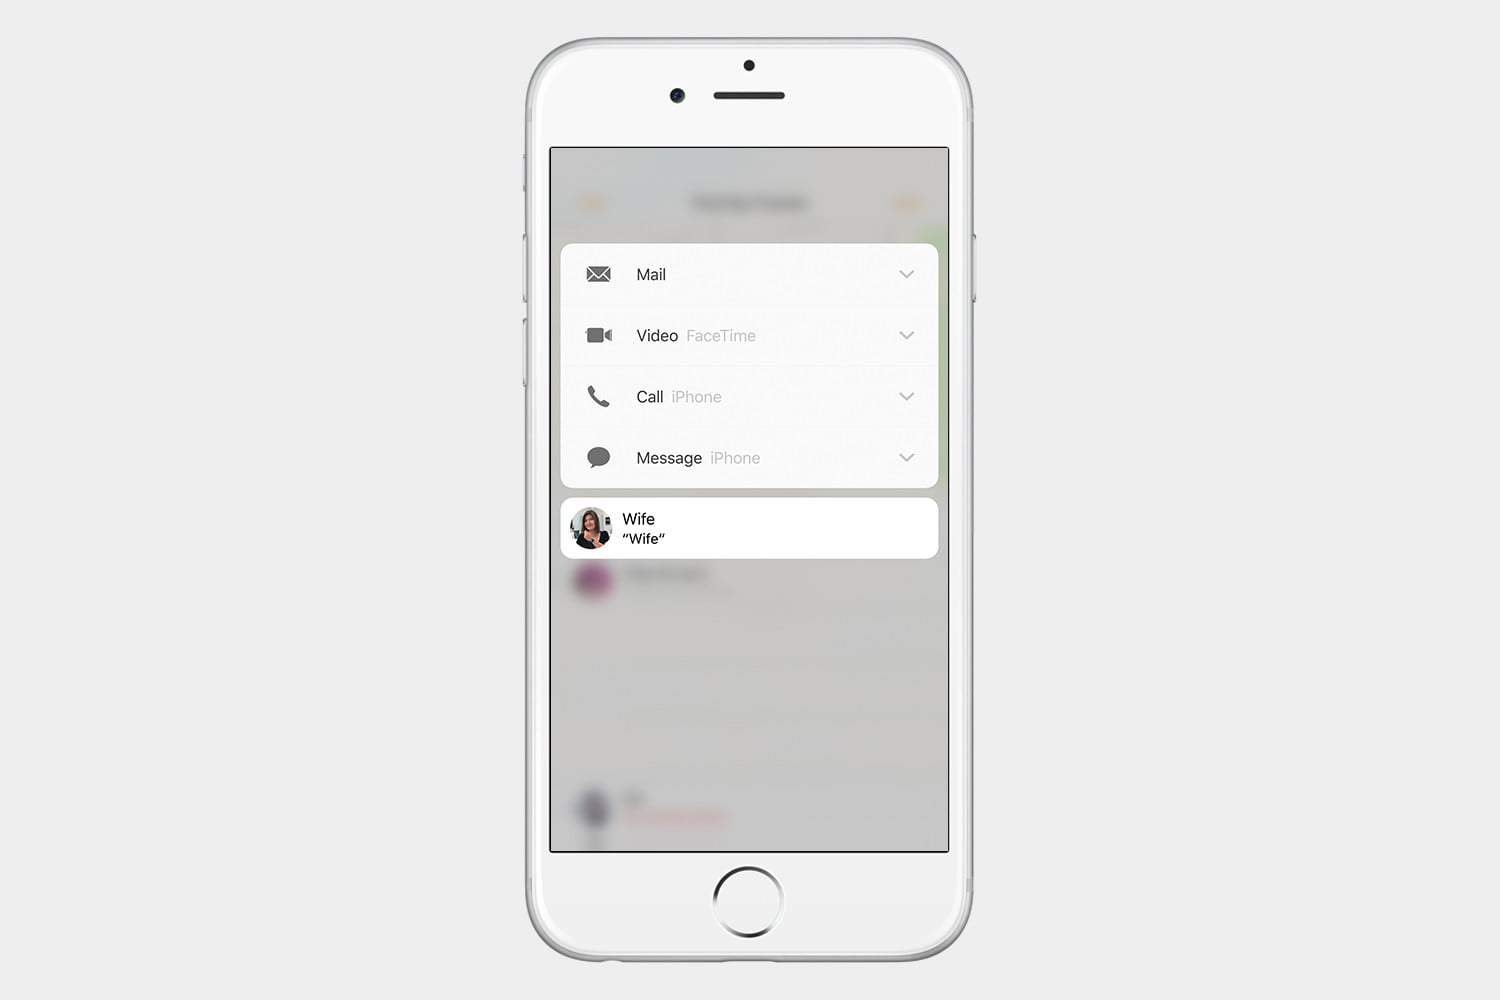 how to use find my friends ios 10 3d touch3